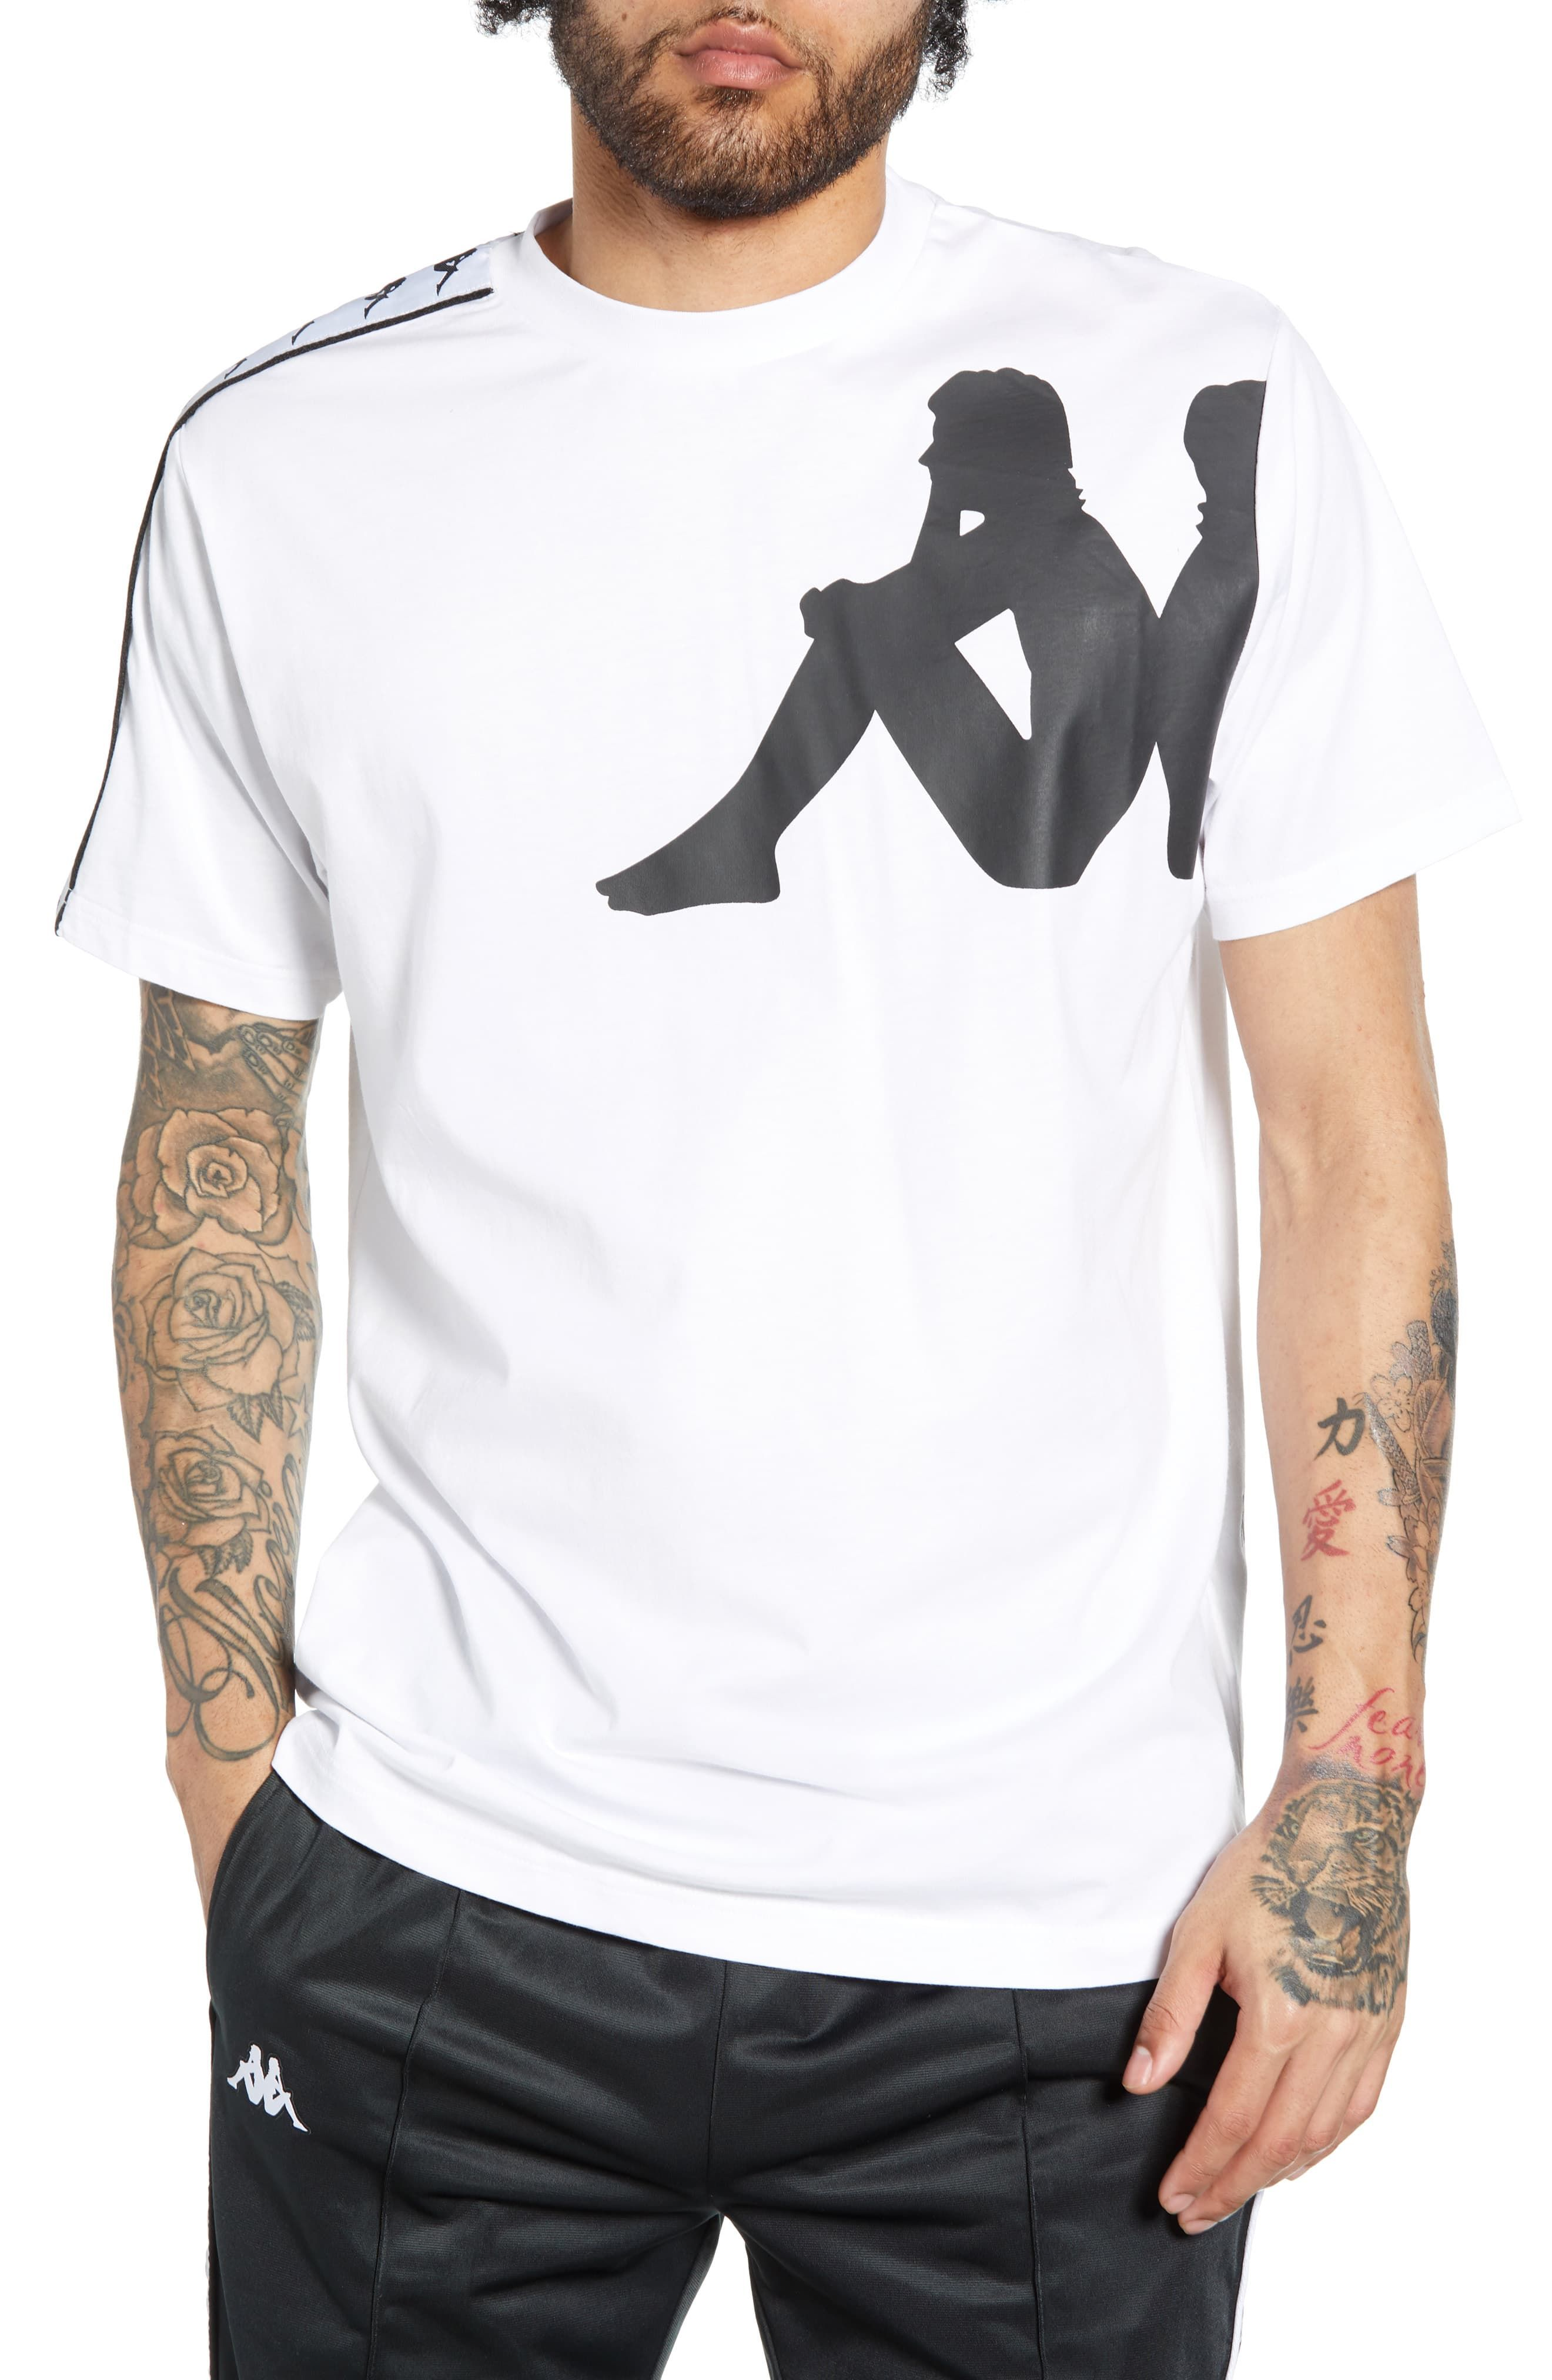 0fb7687178 Men's Kappa Authentic Buys T-Shirt, Size XX-Large - White in 2019 ...